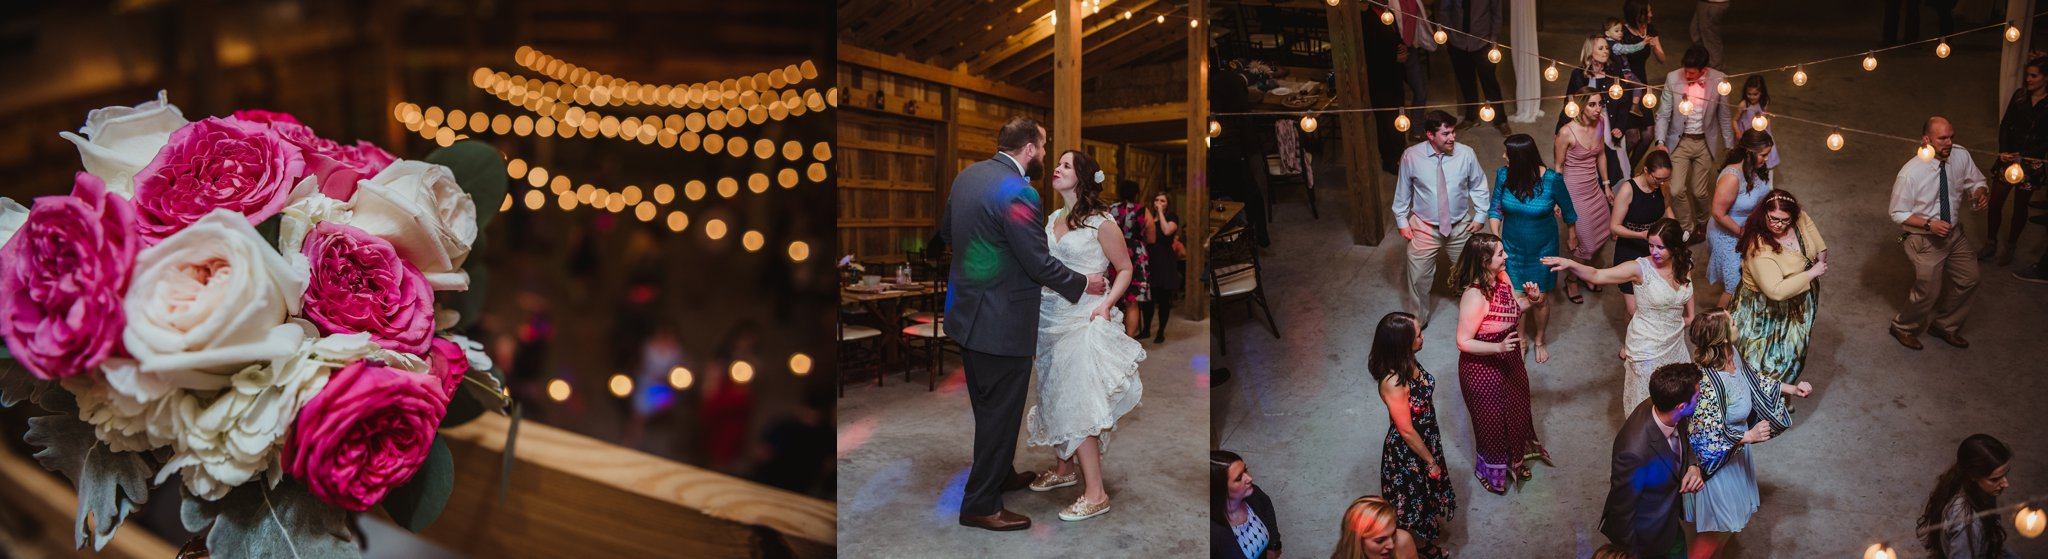 The bride and groom, along with their guests, are dancing at their wedding reception at Carlee Farm in Oxford, NC, taken by Rose Trail Images.